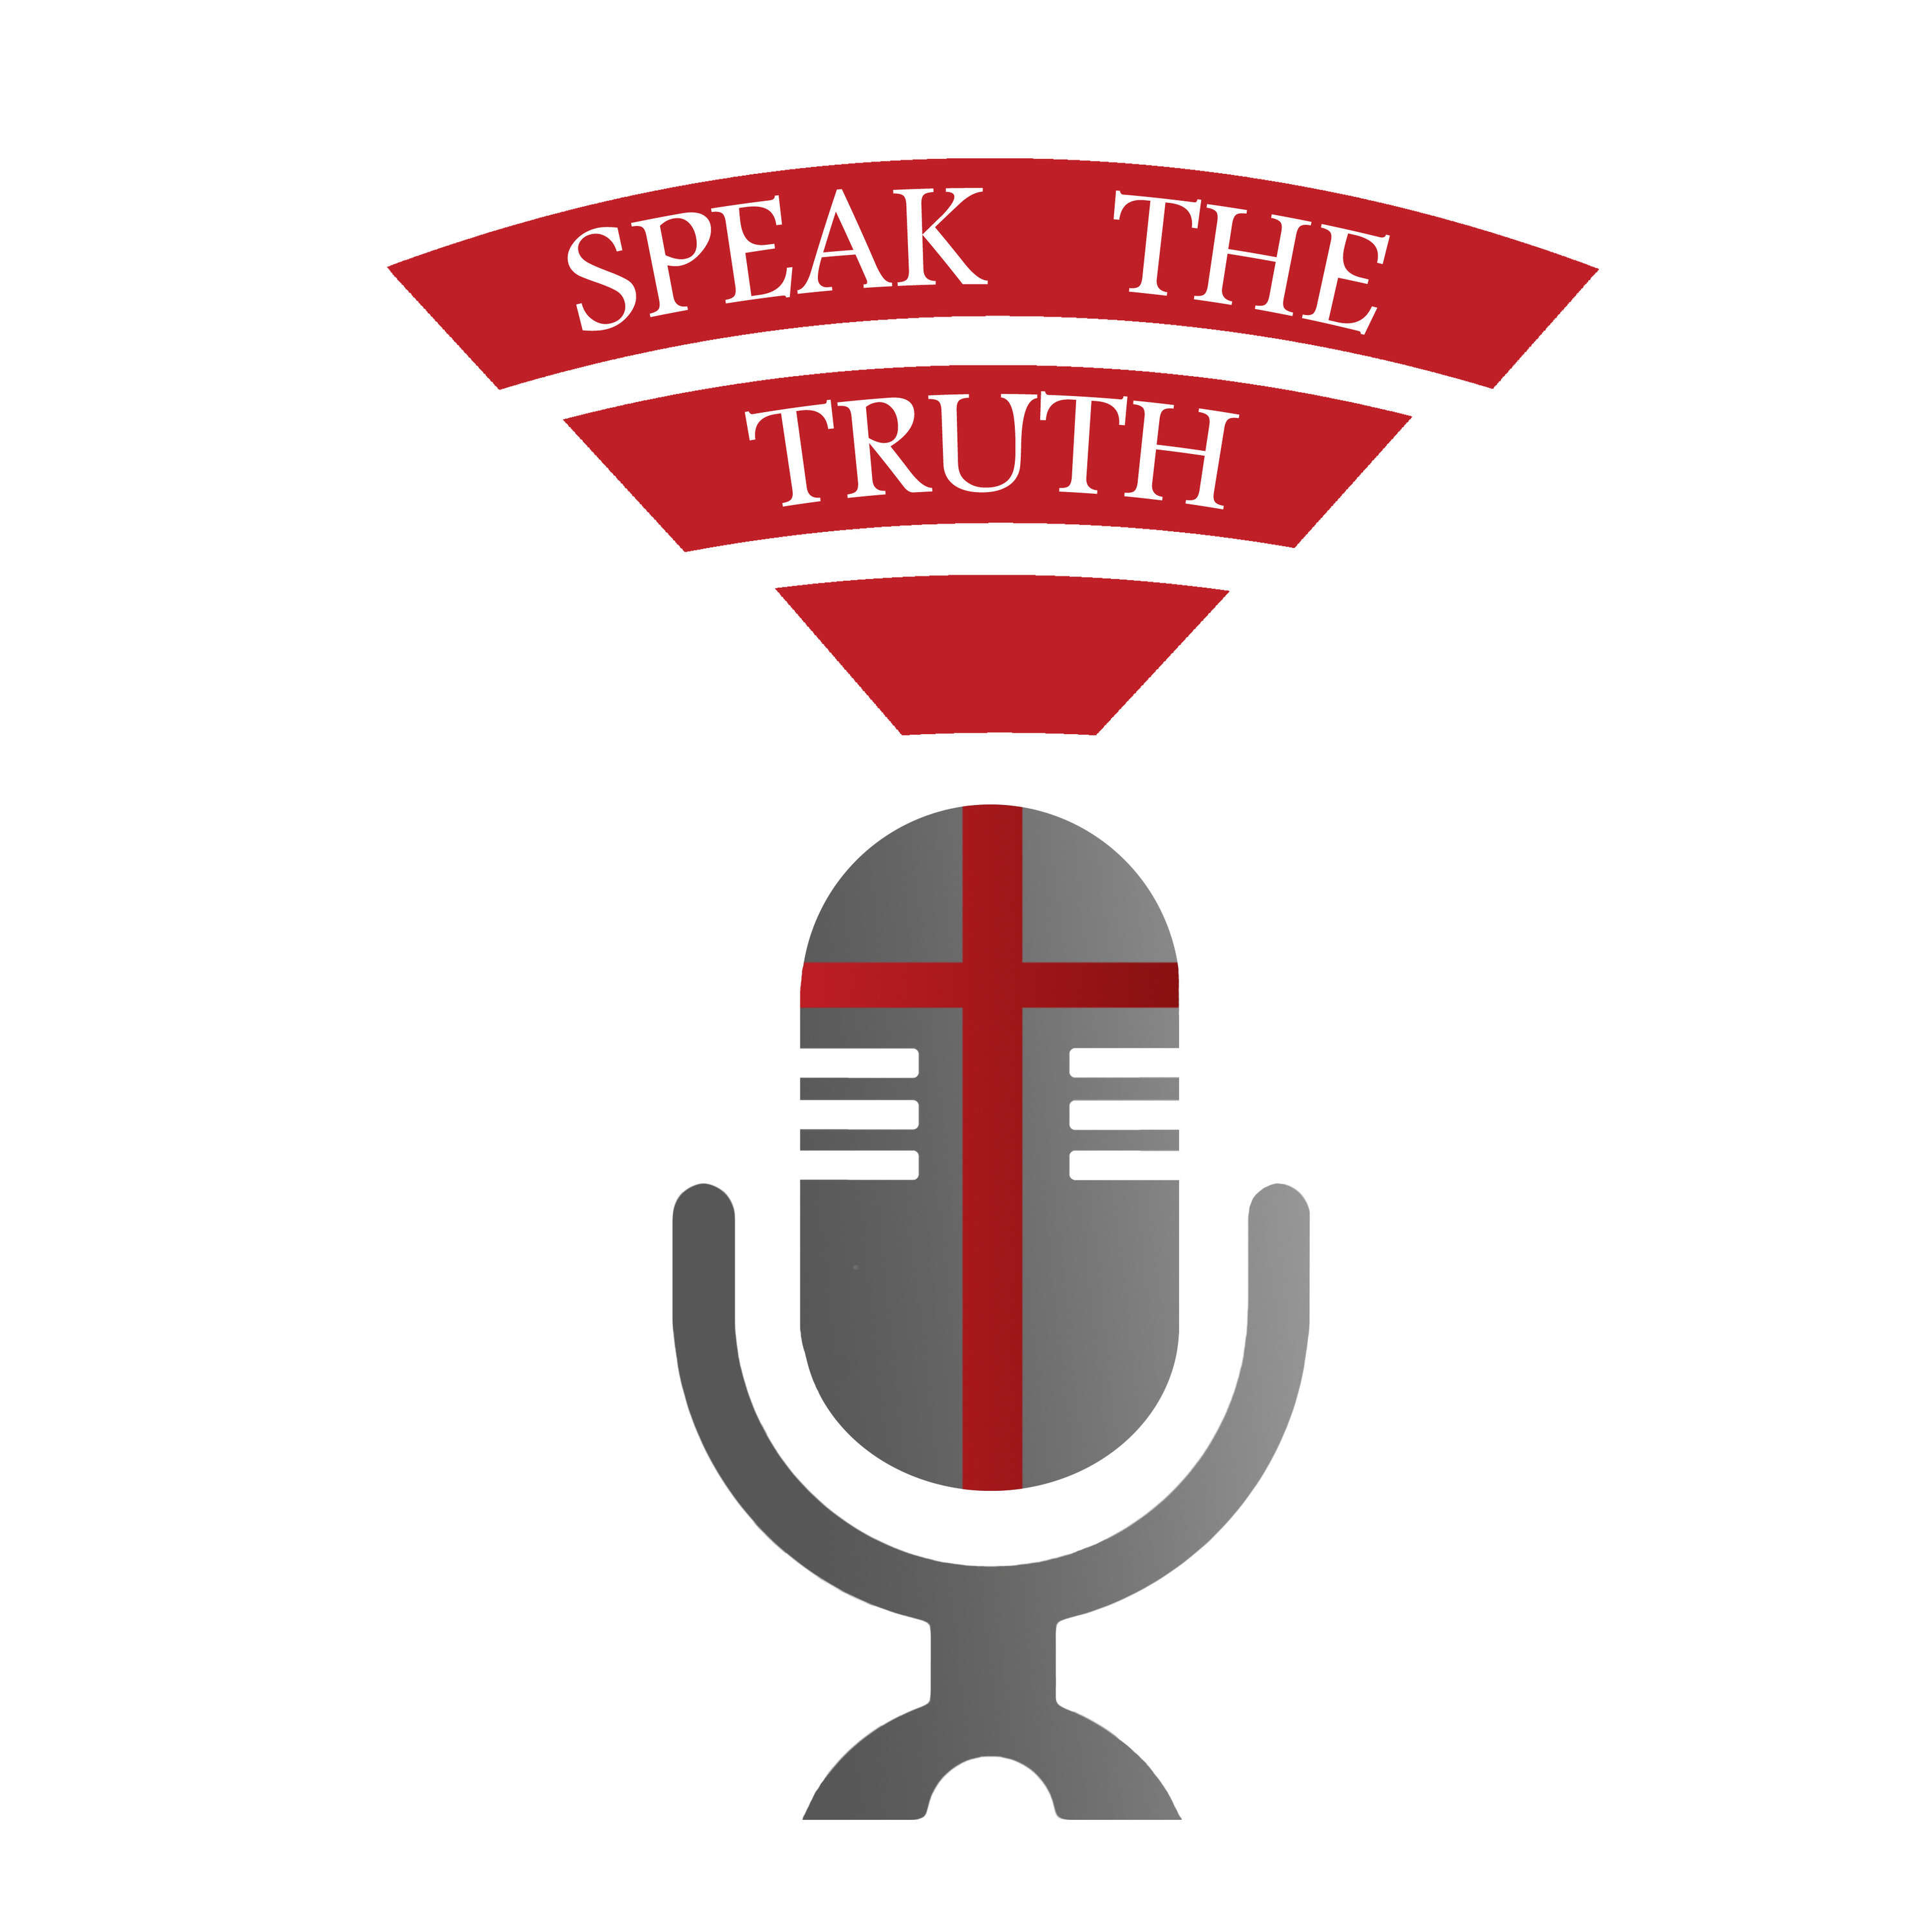 EP. 91 The Gospel In Counseling: Bringing The Gospel Into The Counseling Room - Part 1